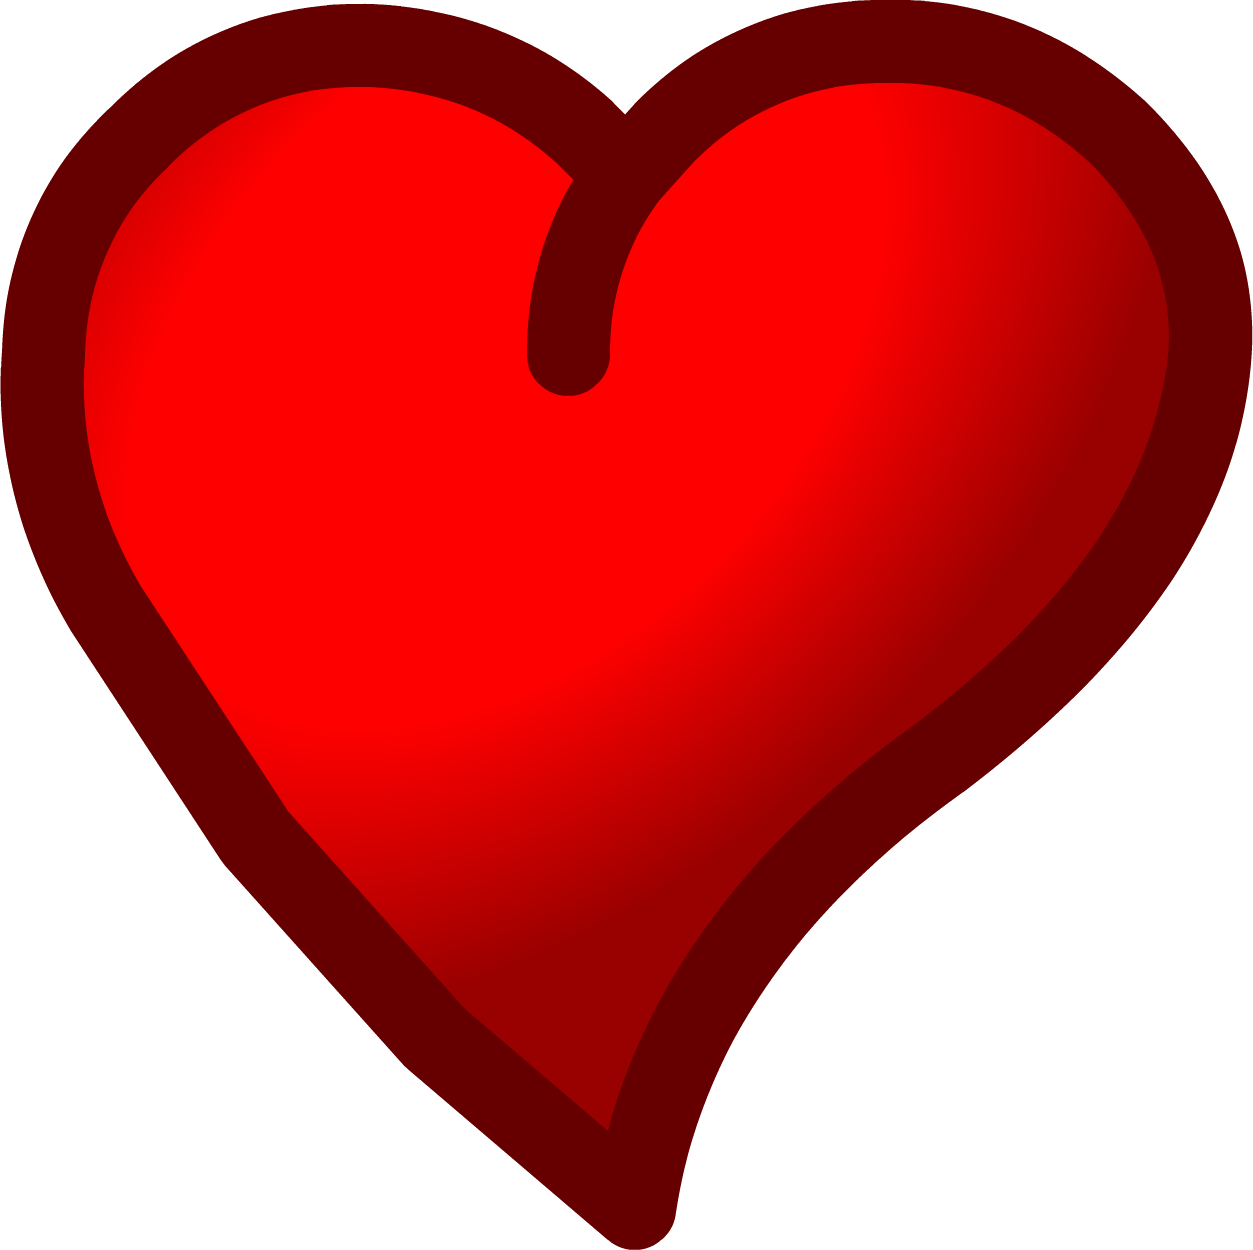 13 Heart Emoticon Facebook Images